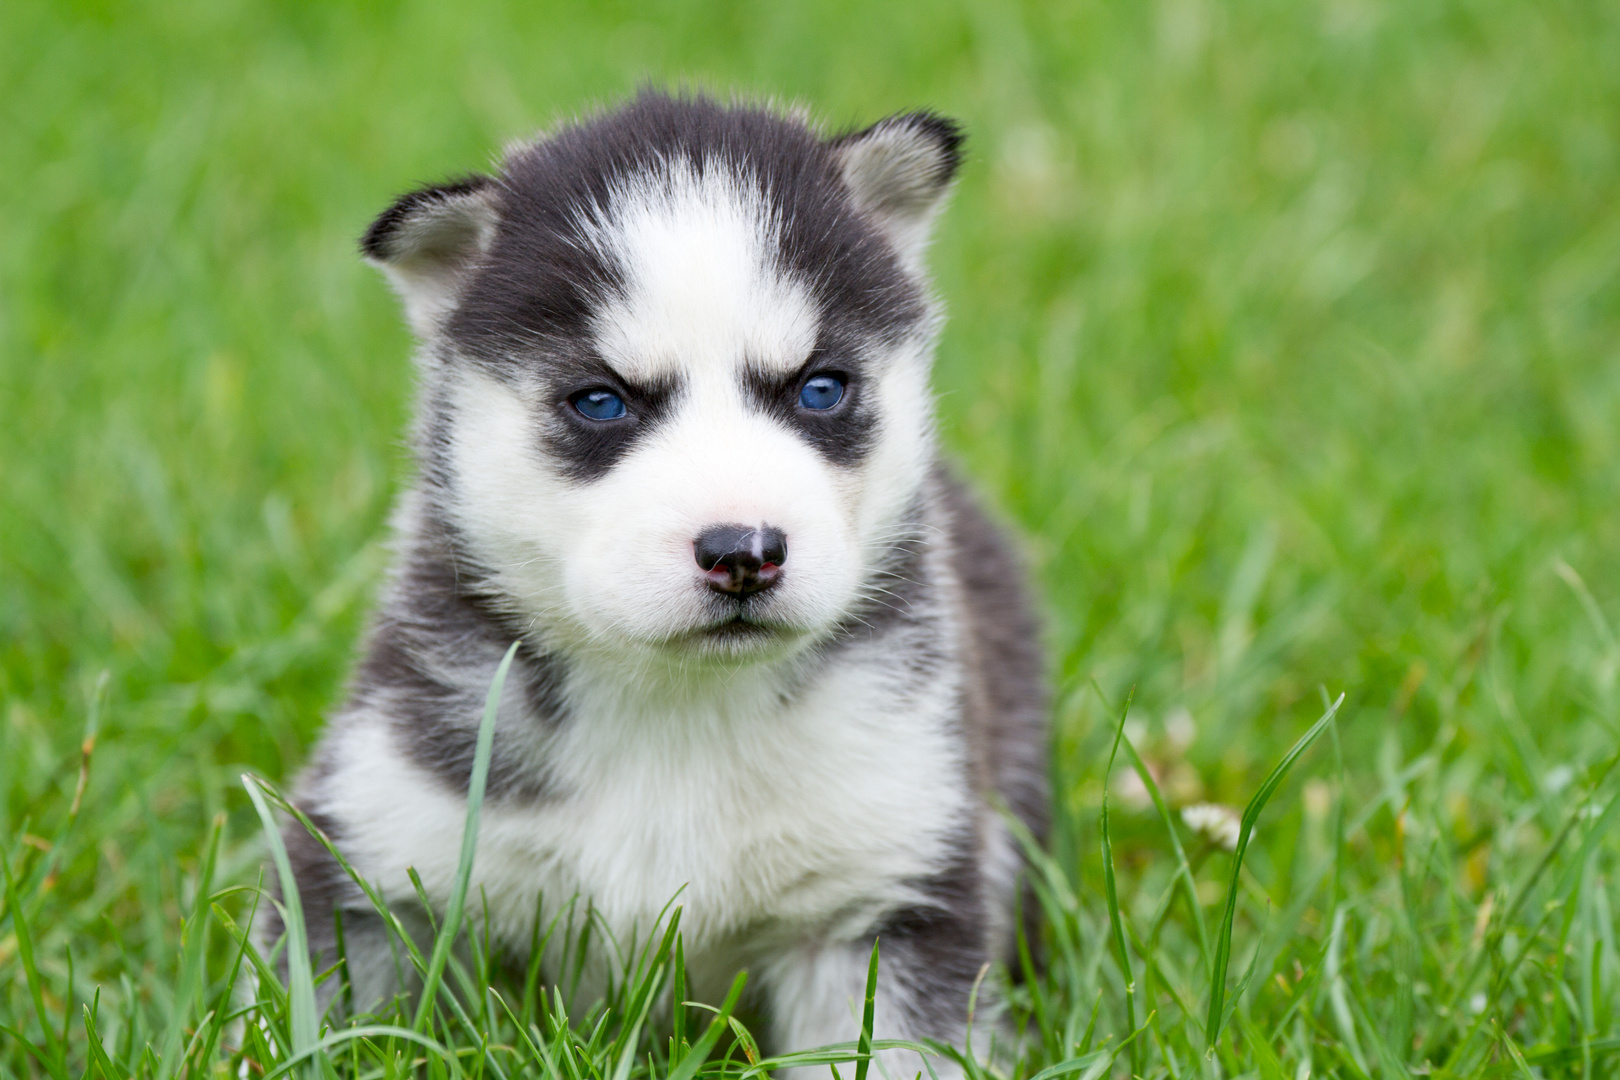 husky baby foto bild tiere haustiere hunde bilder auf fotocommunity. Black Bedroom Furniture Sets. Home Design Ideas